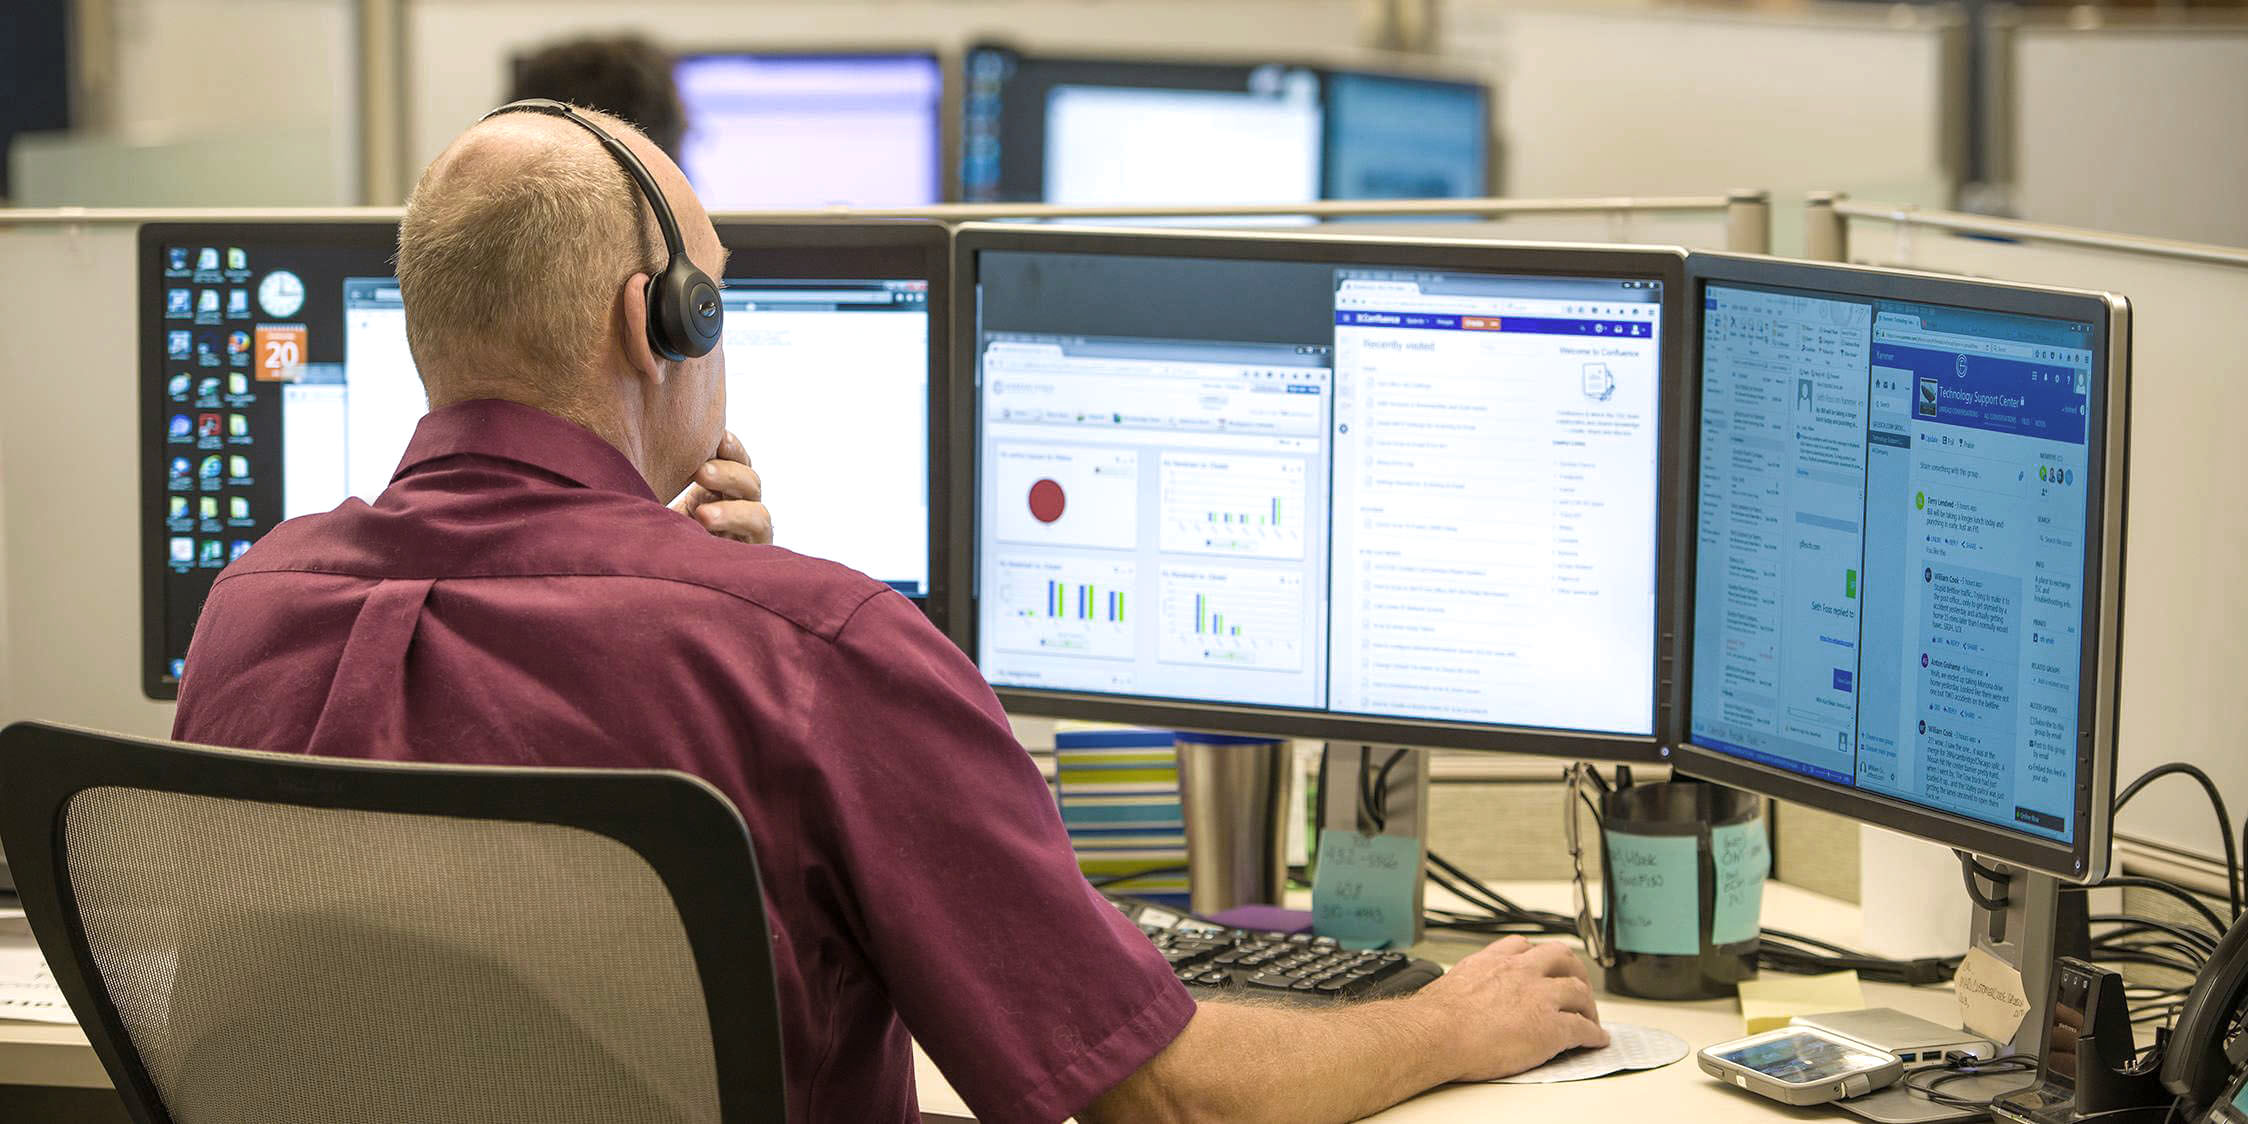 Tech support worker working at a desk with 3 monitors